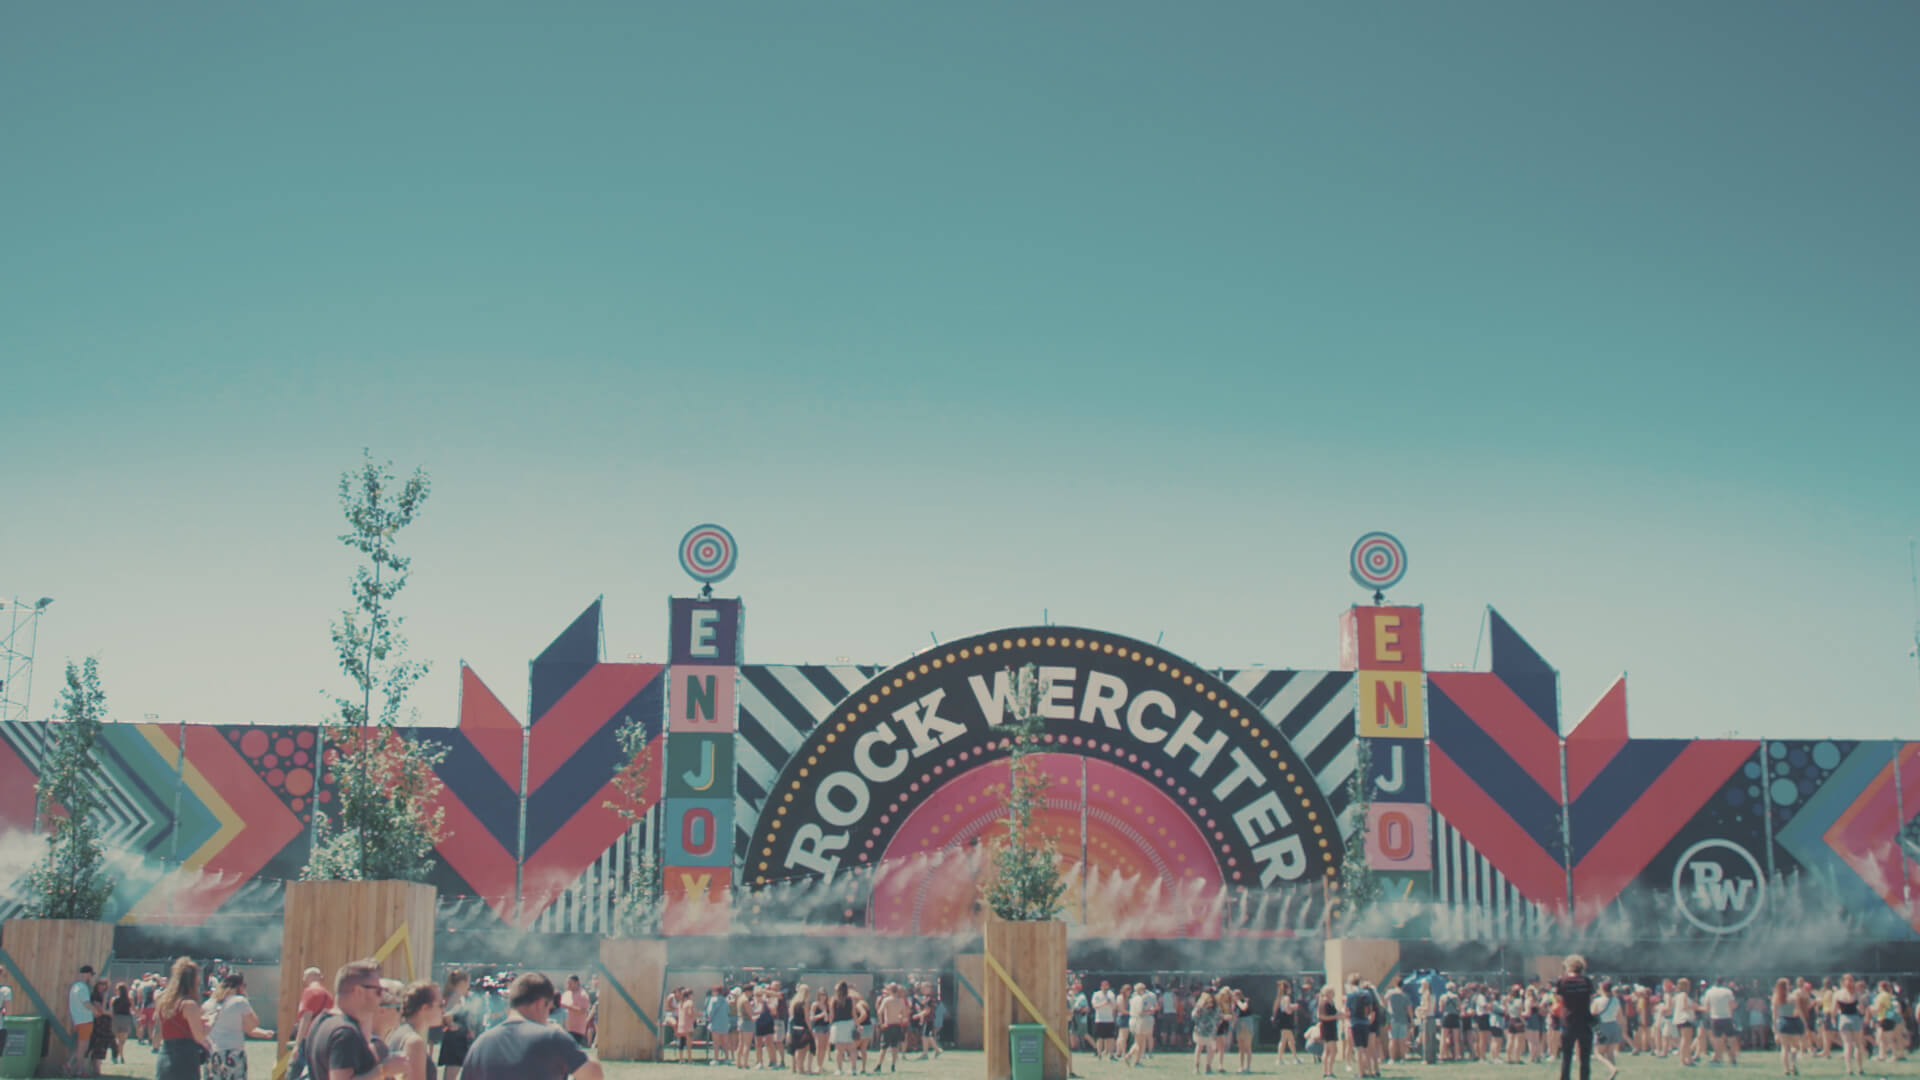 Canvas – Rock Werchter 2019